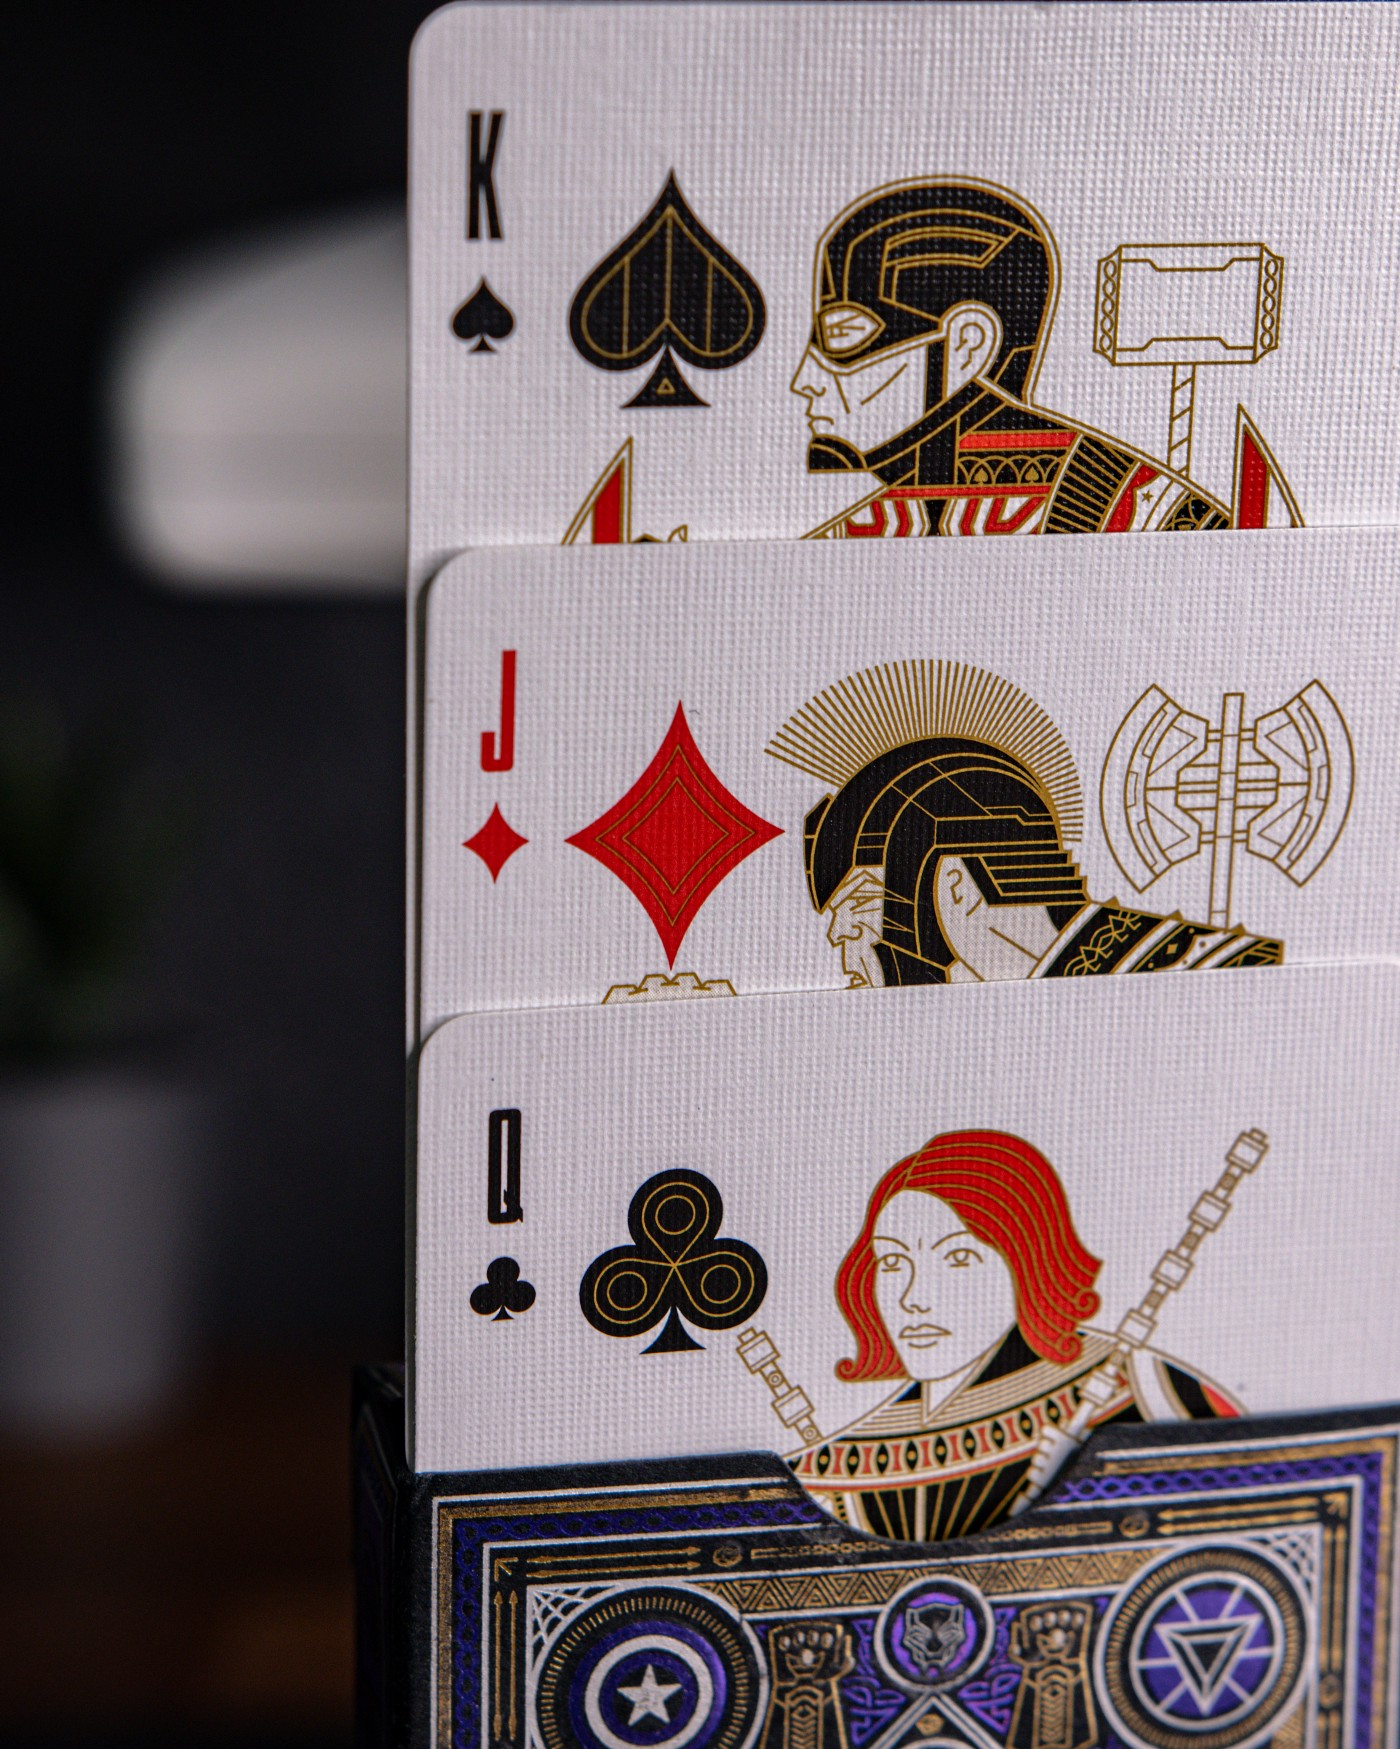 Fancy-looking playing cards featuring Marvel characters (Captain America, Hulk, Black Widow)